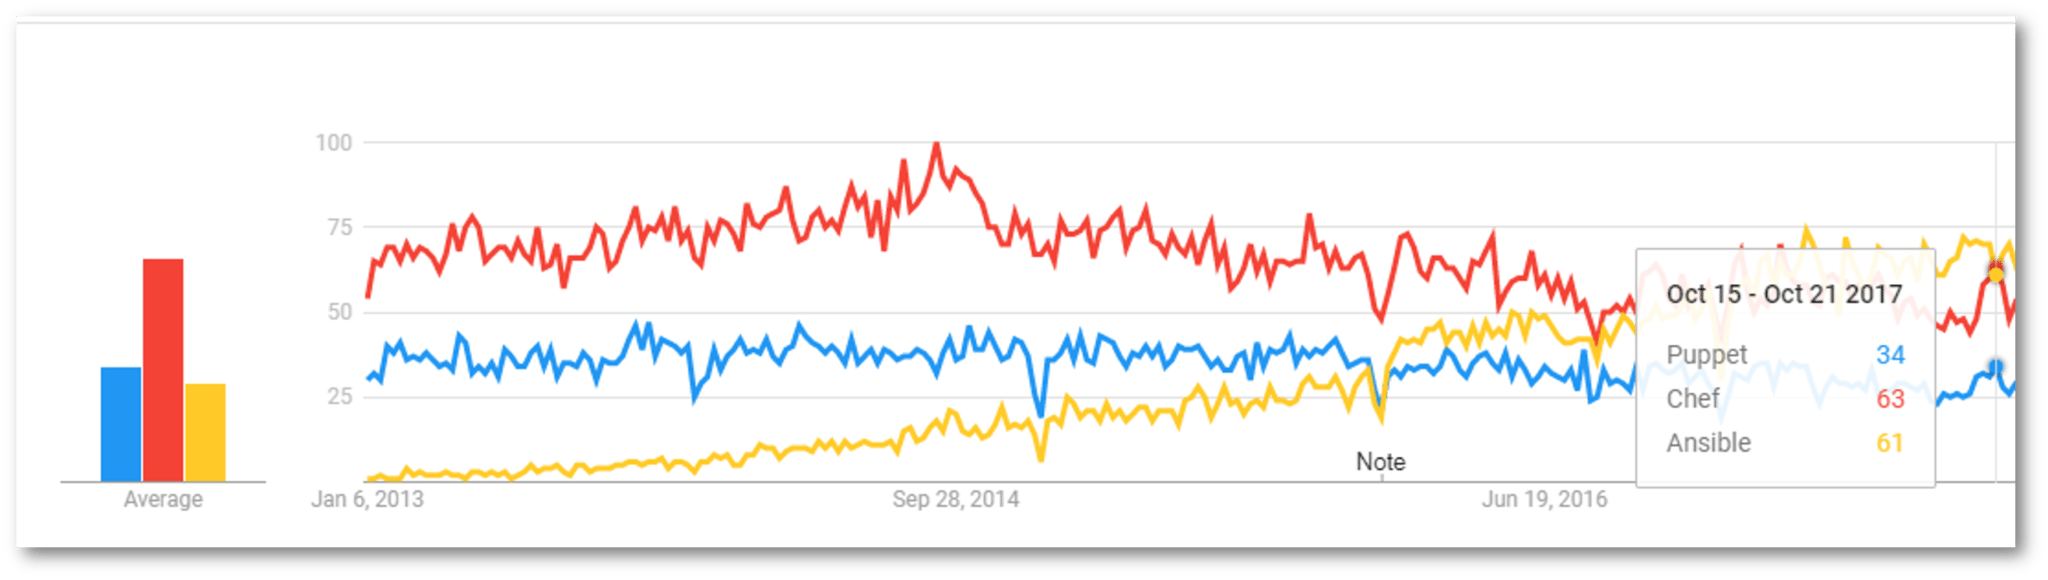 Devops Blog - Ansible Google Trend - Edureka